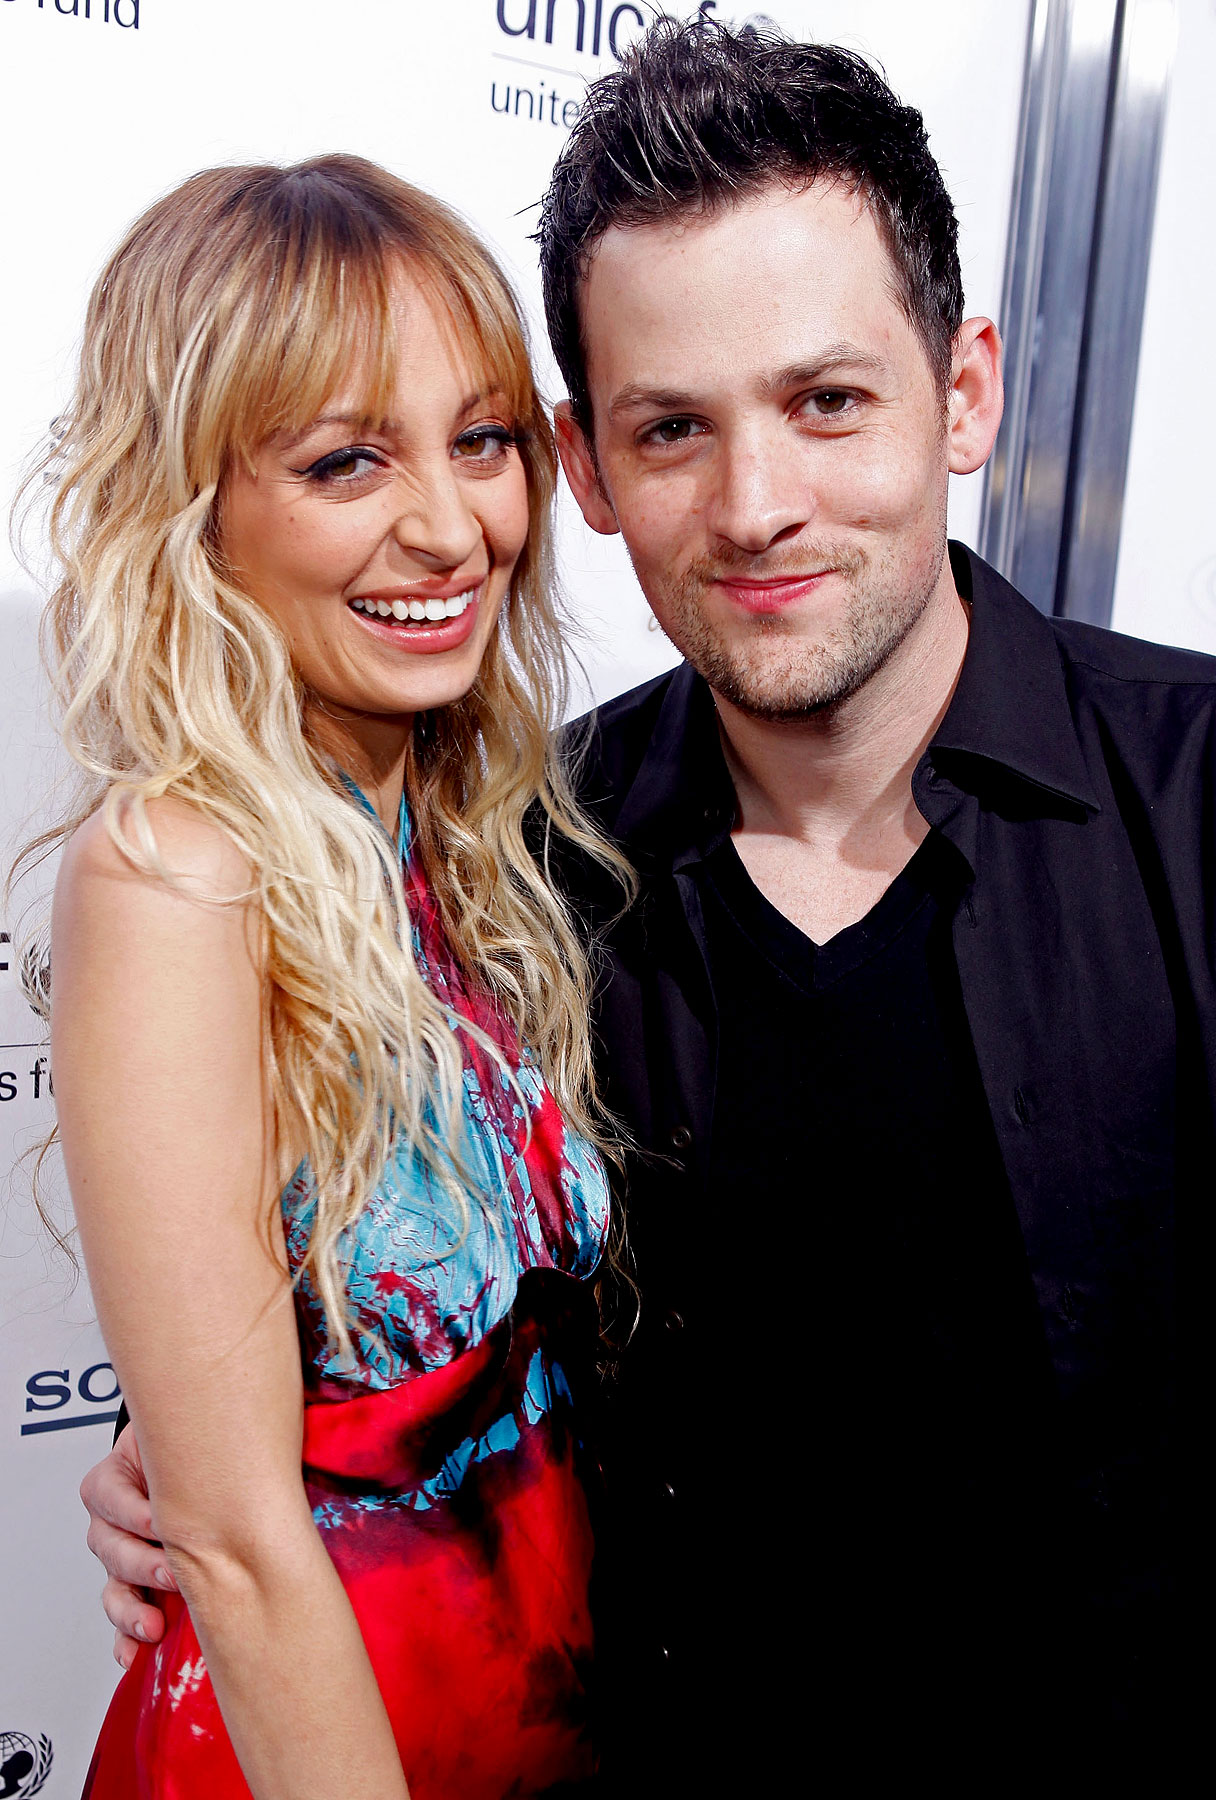 Joel Madden and Nicole Richie's Twitter Fun